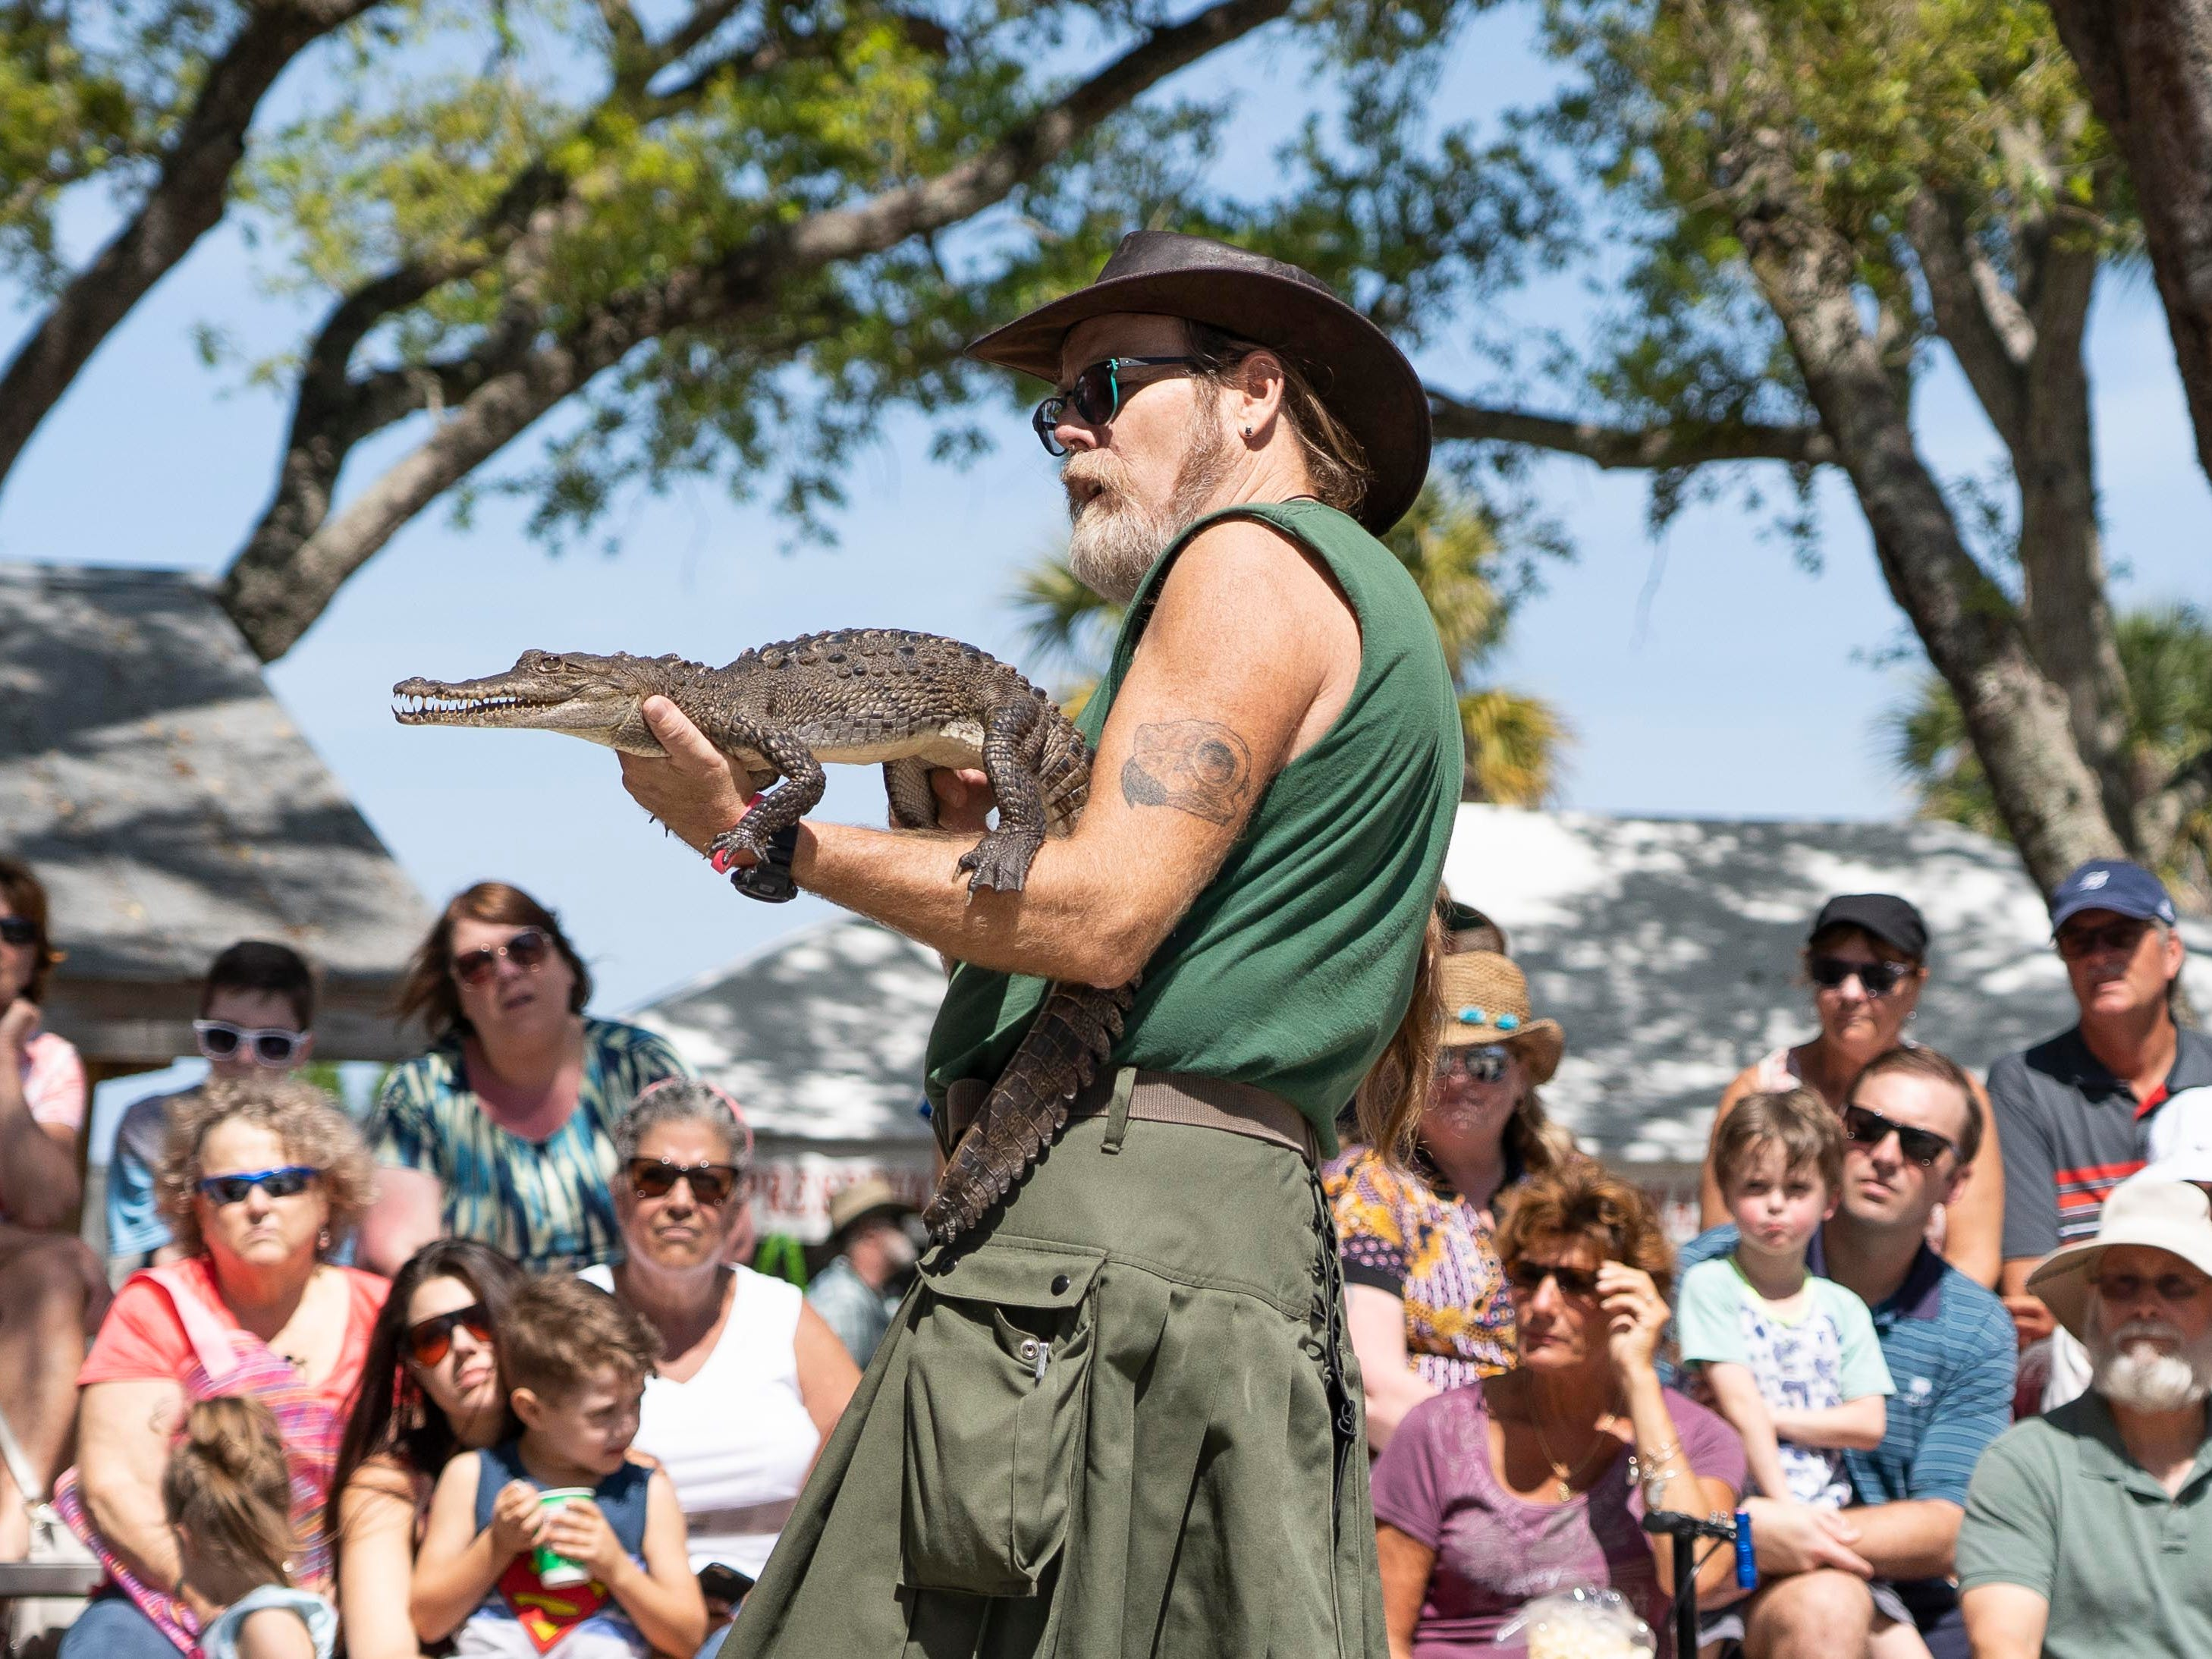 """The animals that we bring are ones that cannot be released back into the wild, but they can be ambassadors for their wild cousins. Most people don't get close to wild animals anymore, so we take the animals to the people,"" said Tim Brown, center, Director of Education at the Treasure Coast Wildlife Center in Palm City, who talks about an American crocodile to the crowd at the 27th annual Pelican Island Wildlife Festival on Saturday, March 9, 2019, at Riverview Park in Sebastian. The festival celebrates the anniversary of the establishment of Pelican Island as the nationÕs first national wildlife refuge on March 14, 1903, by President Theodore Roosevelt."